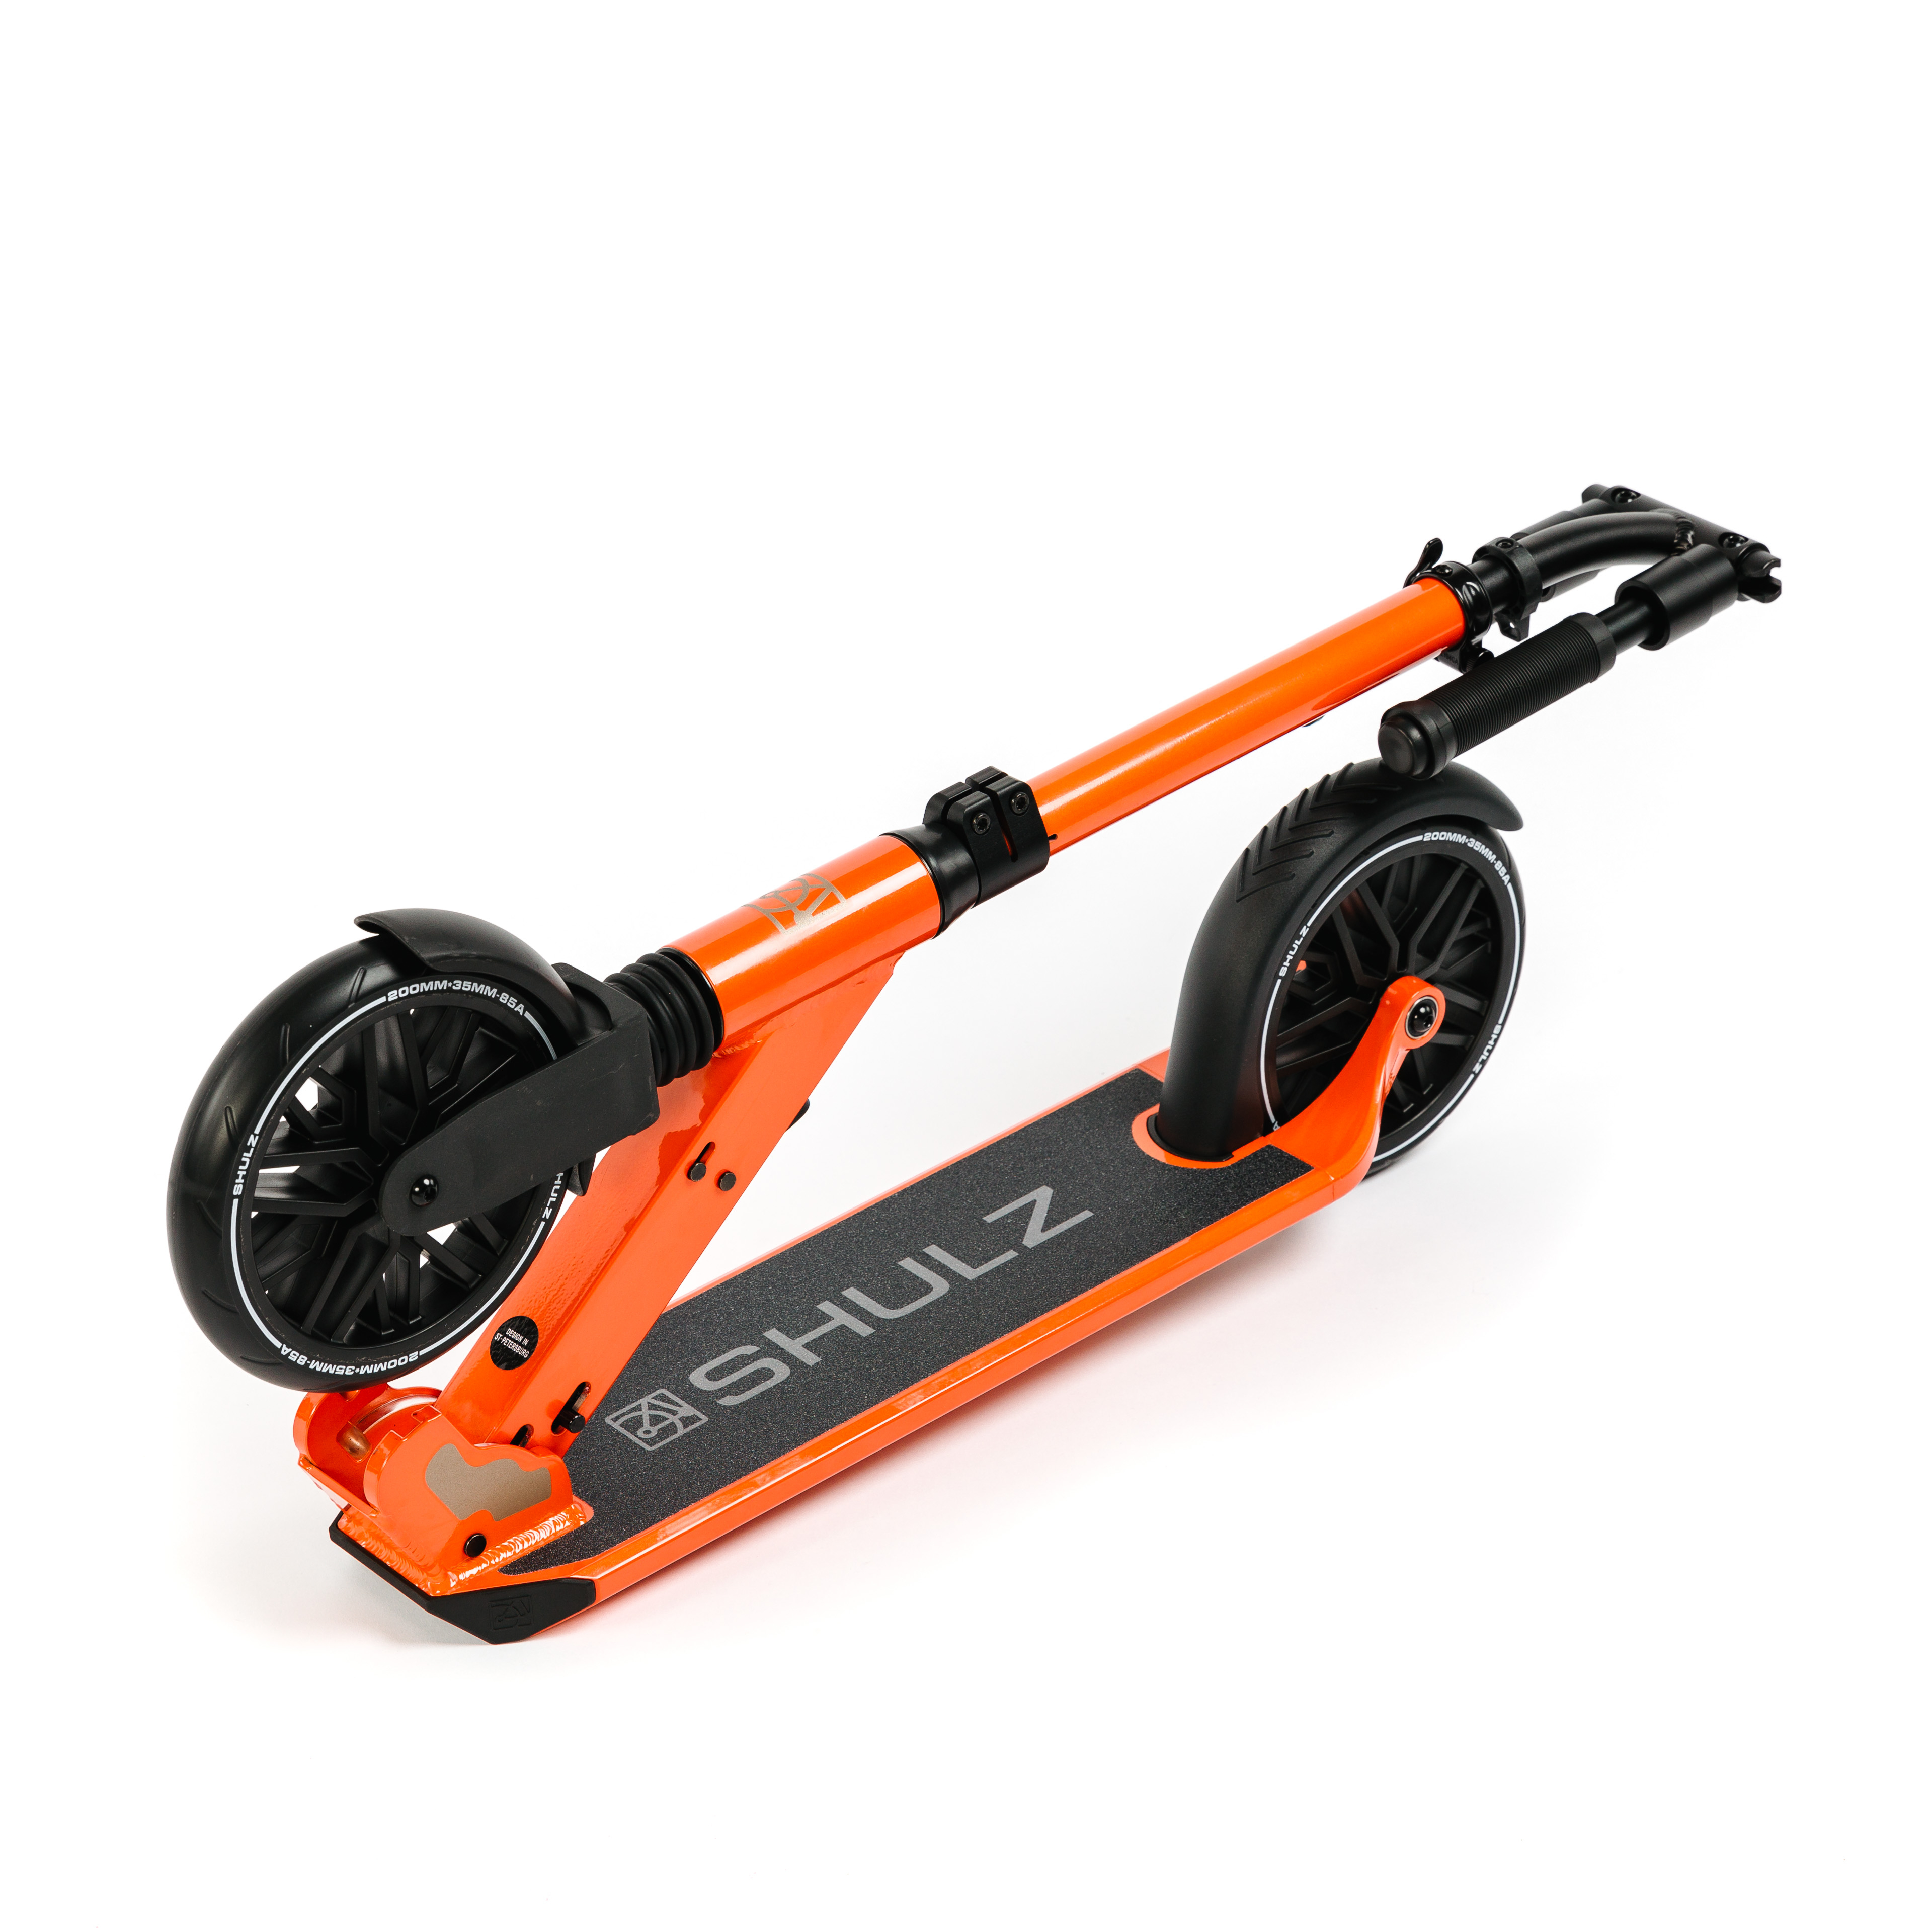 Shulz 200 Pro Scooter